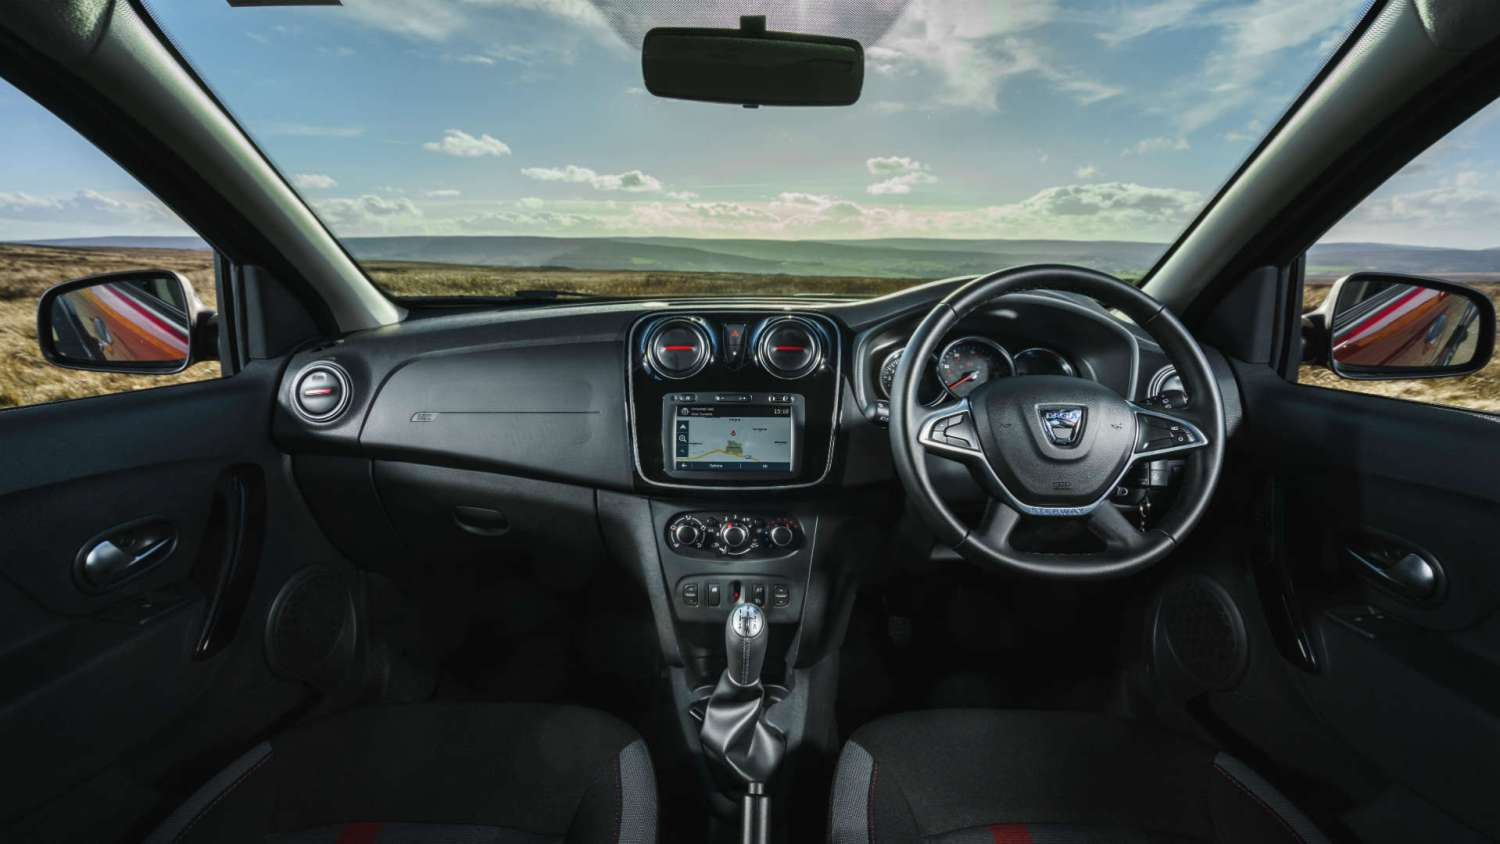 Dacia Techroad interior